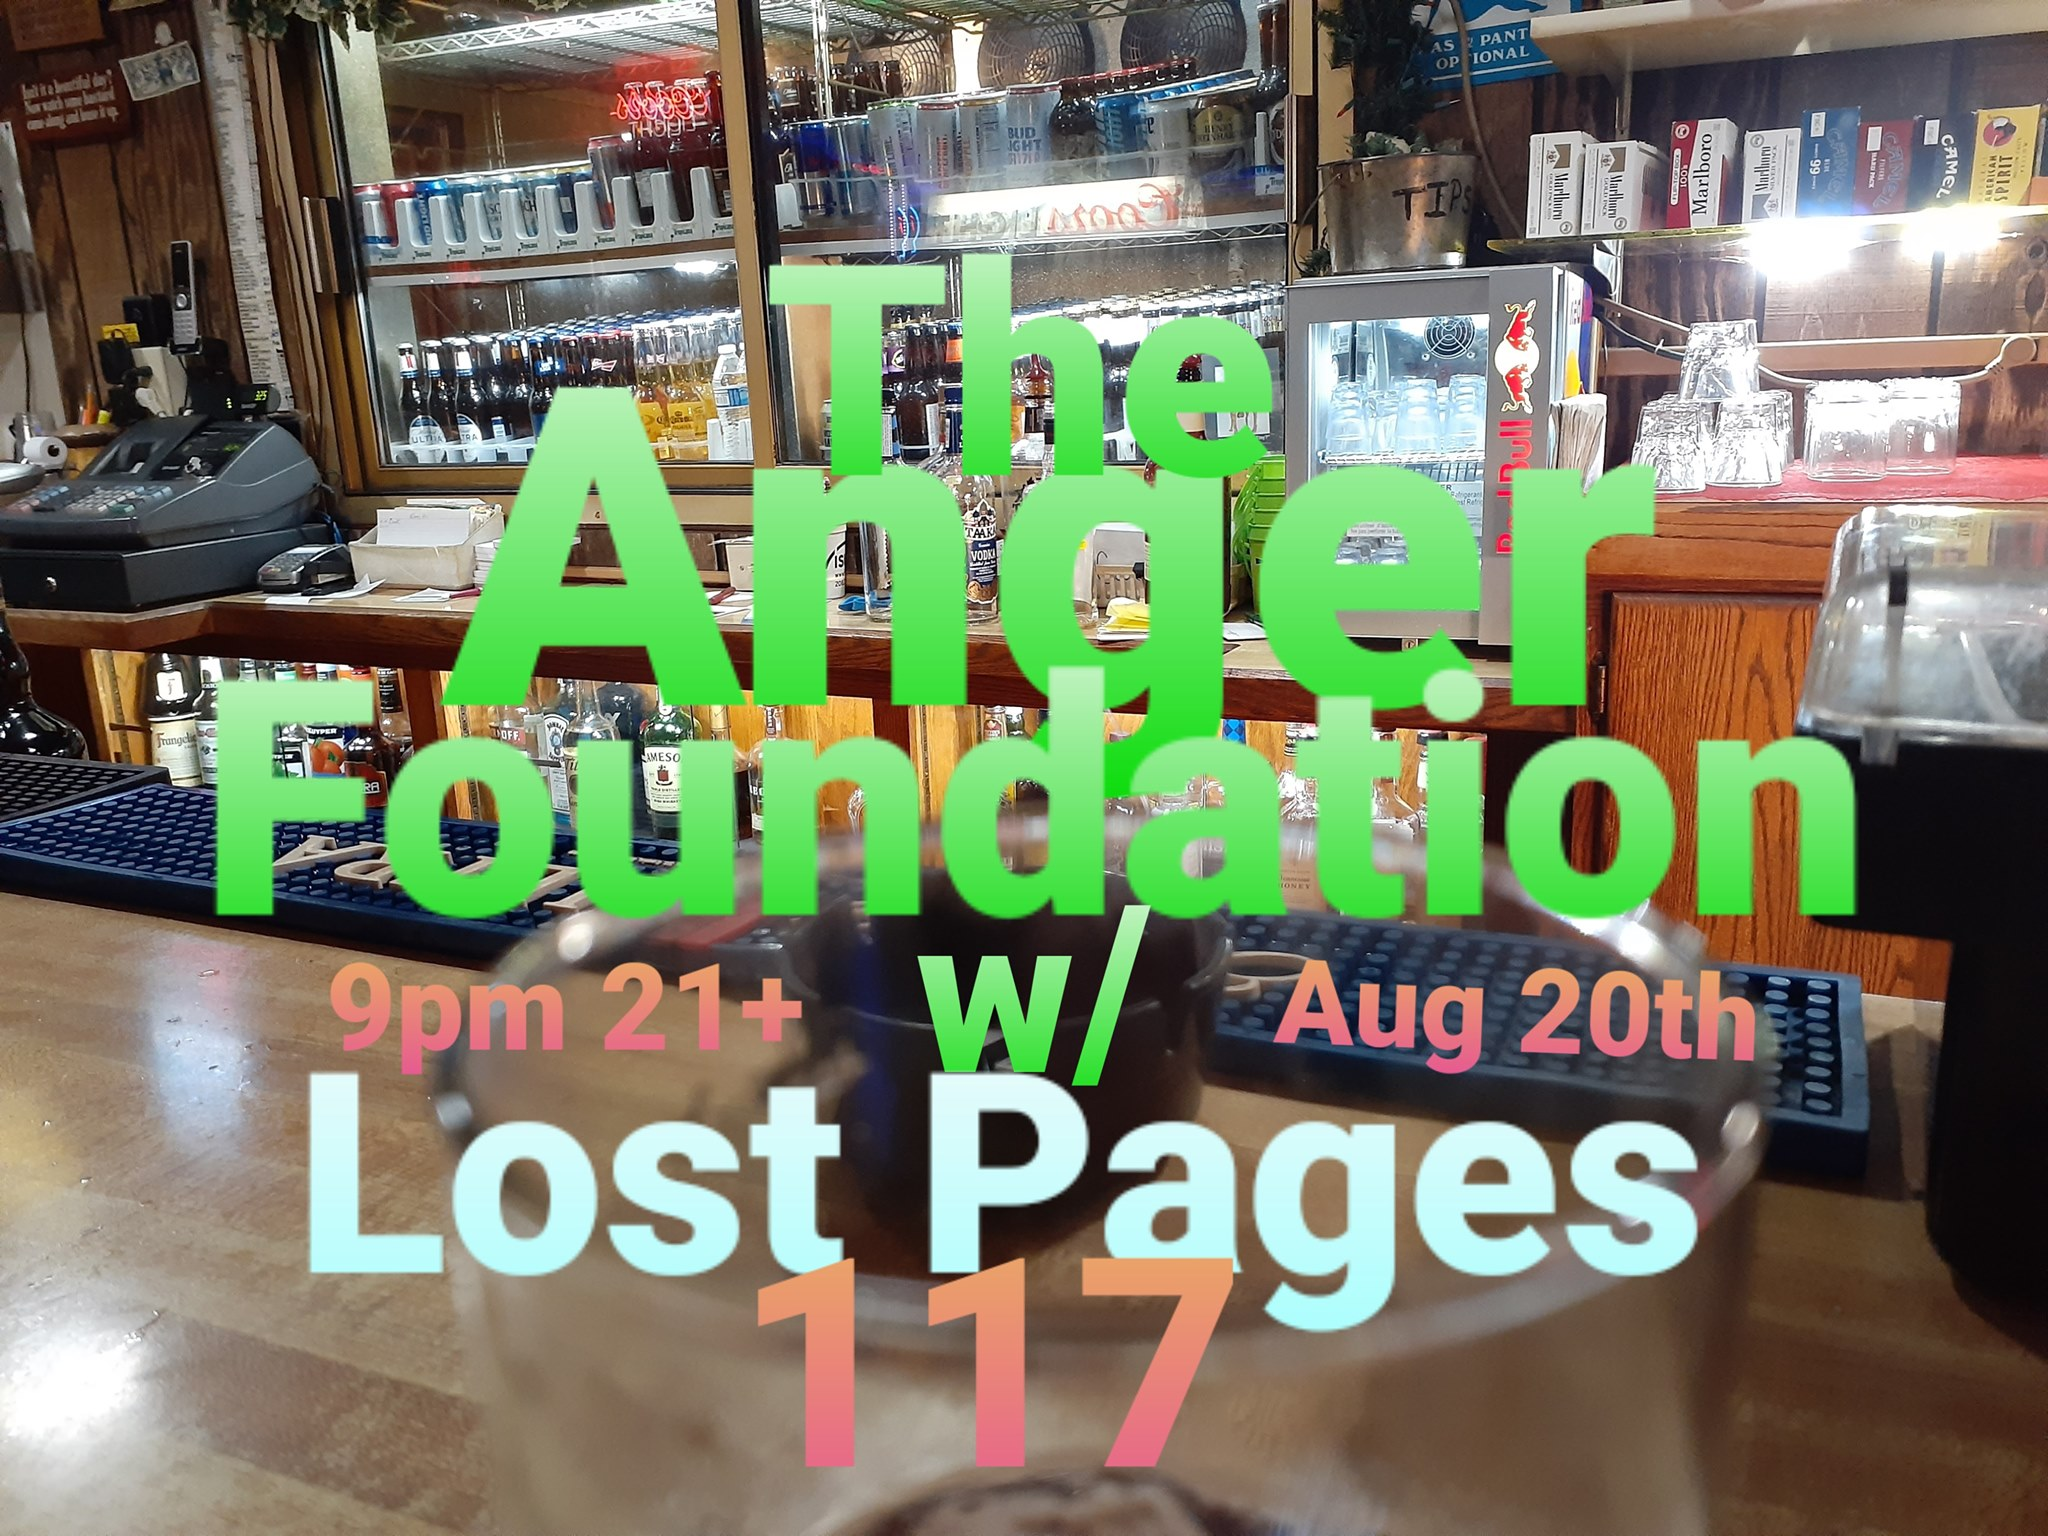 The Anger Foundation/ Lost Pages / Nicholas Evans